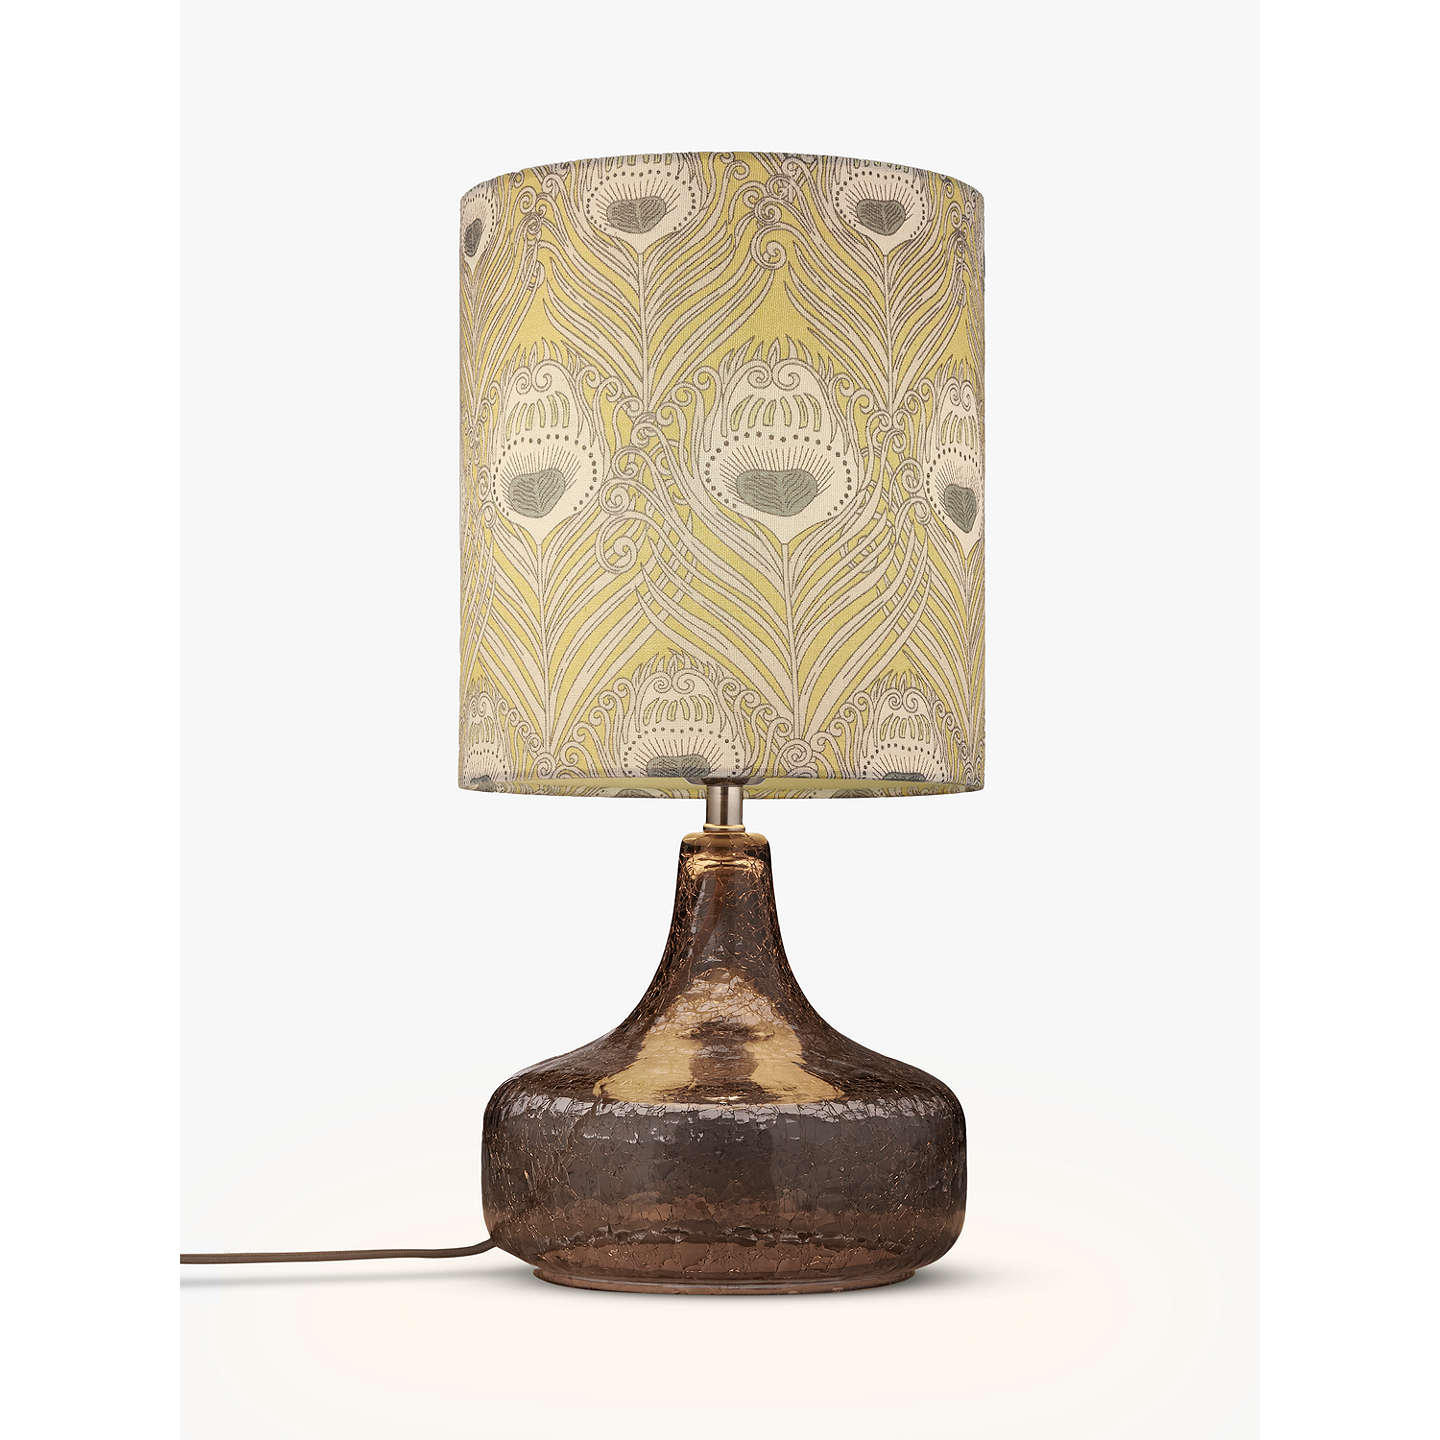 Liberty fabrics john lewis caesar chinois crackle table lamp grey buyliberty fabrics john lewis caesar chinois crackle table lamp grey online at johnlewis aloadofball Gallery